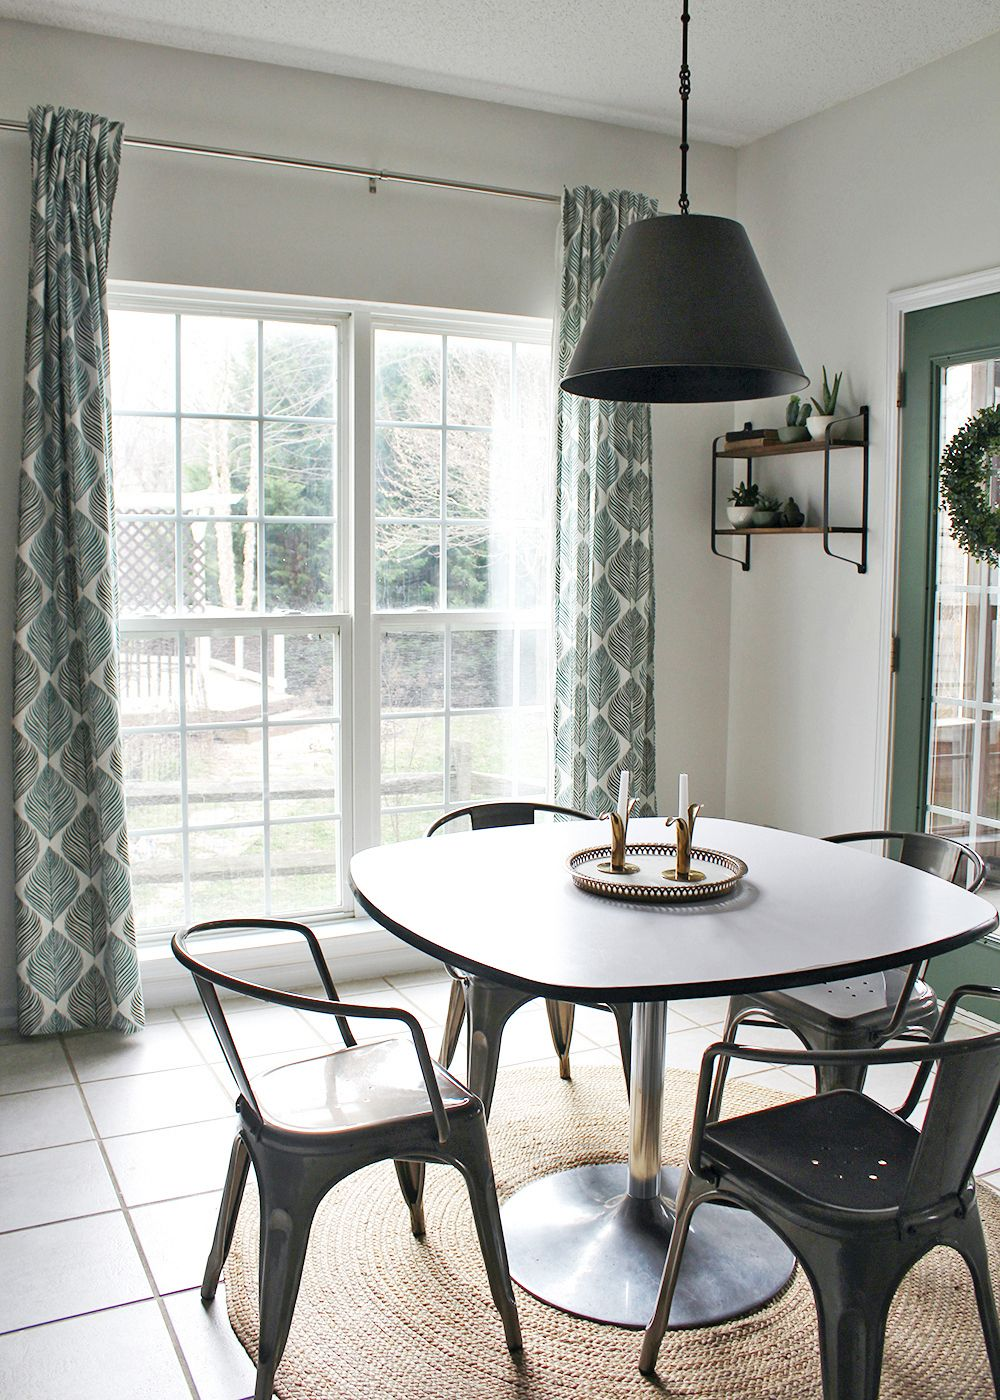 Before  after breakfast nook also best under diys home projects images in diy rh pinterest